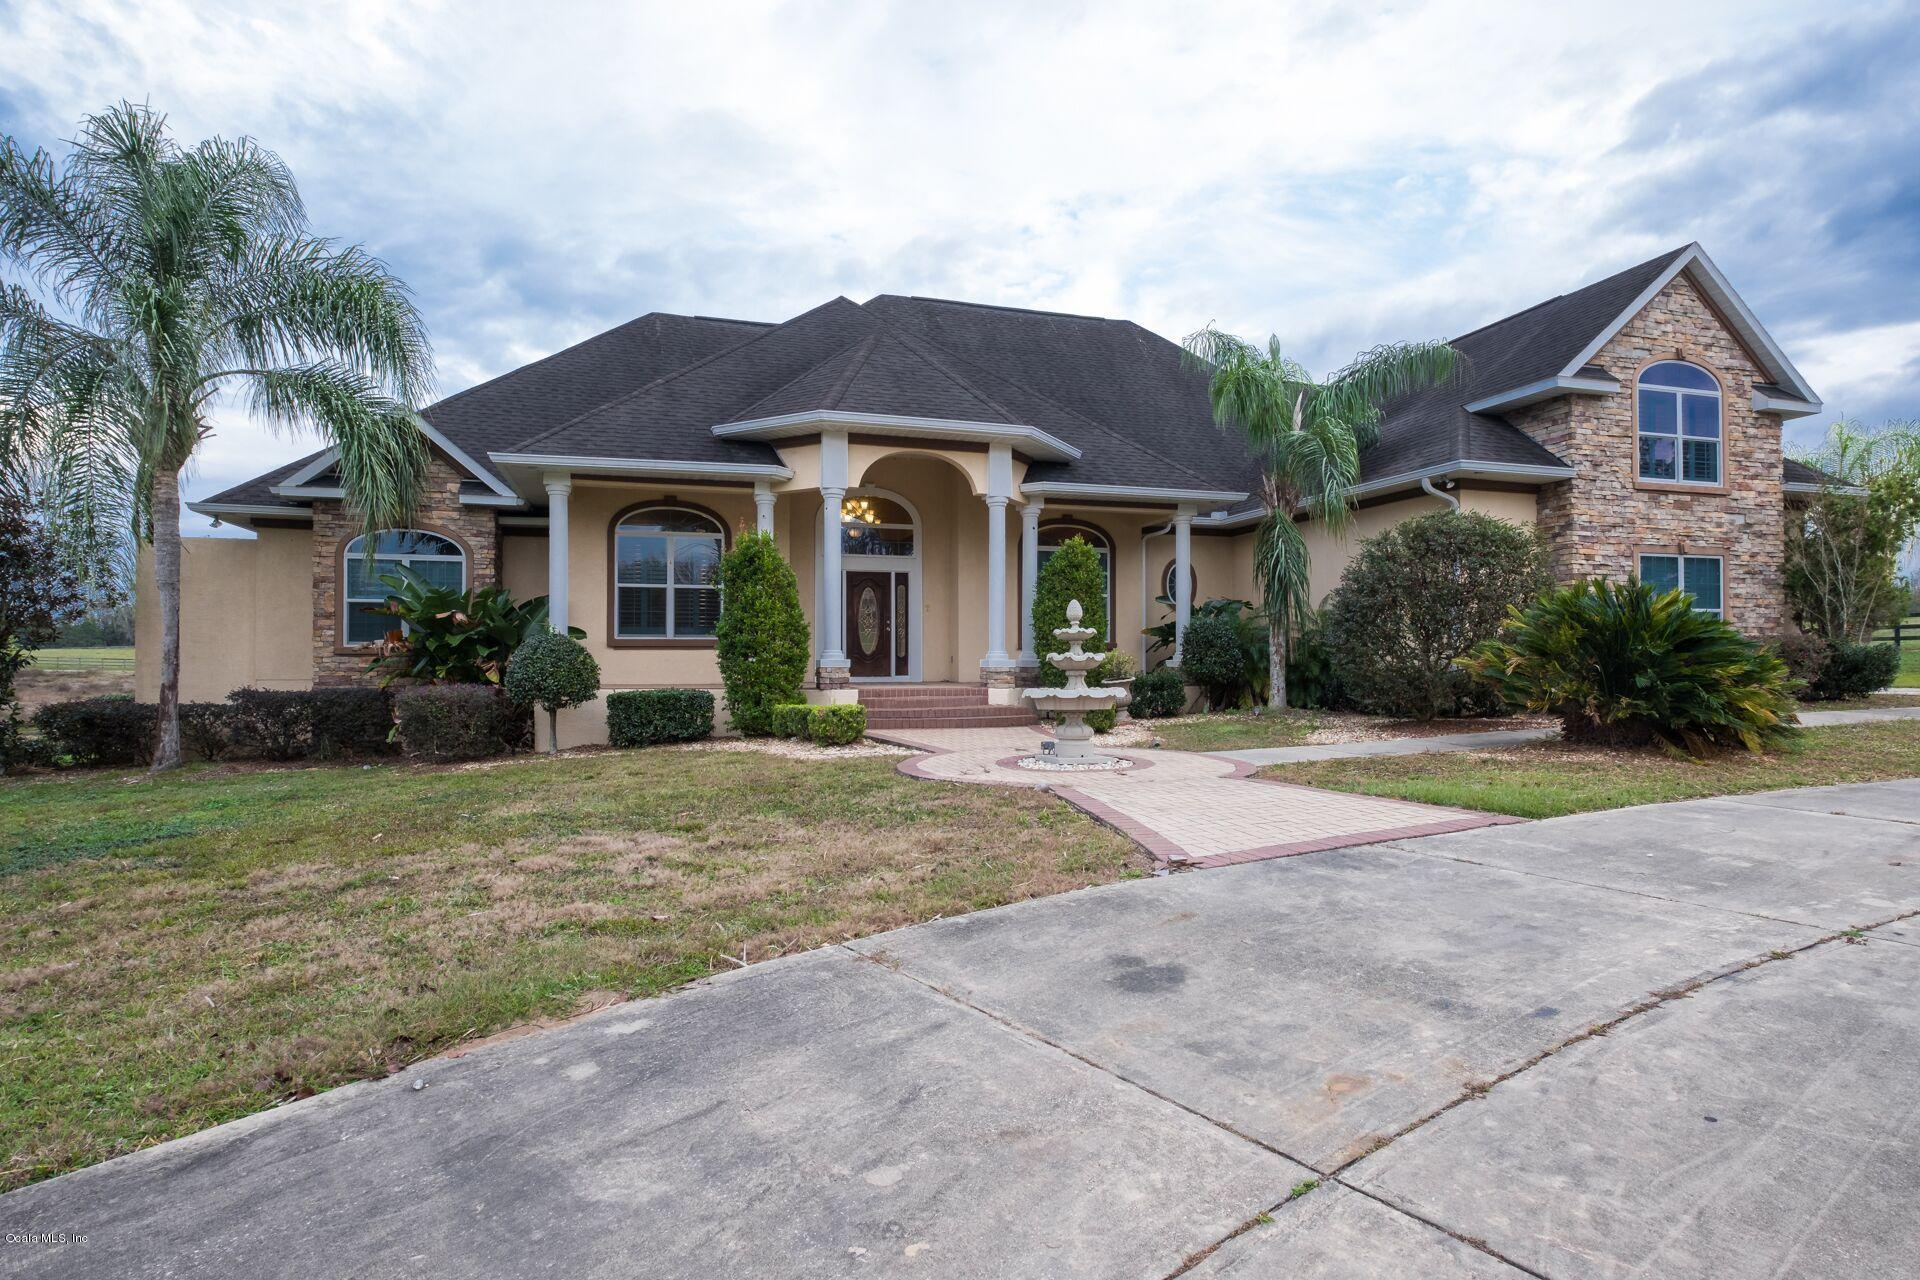 8225 SE 15TH COURT, OCALA, FL 34480